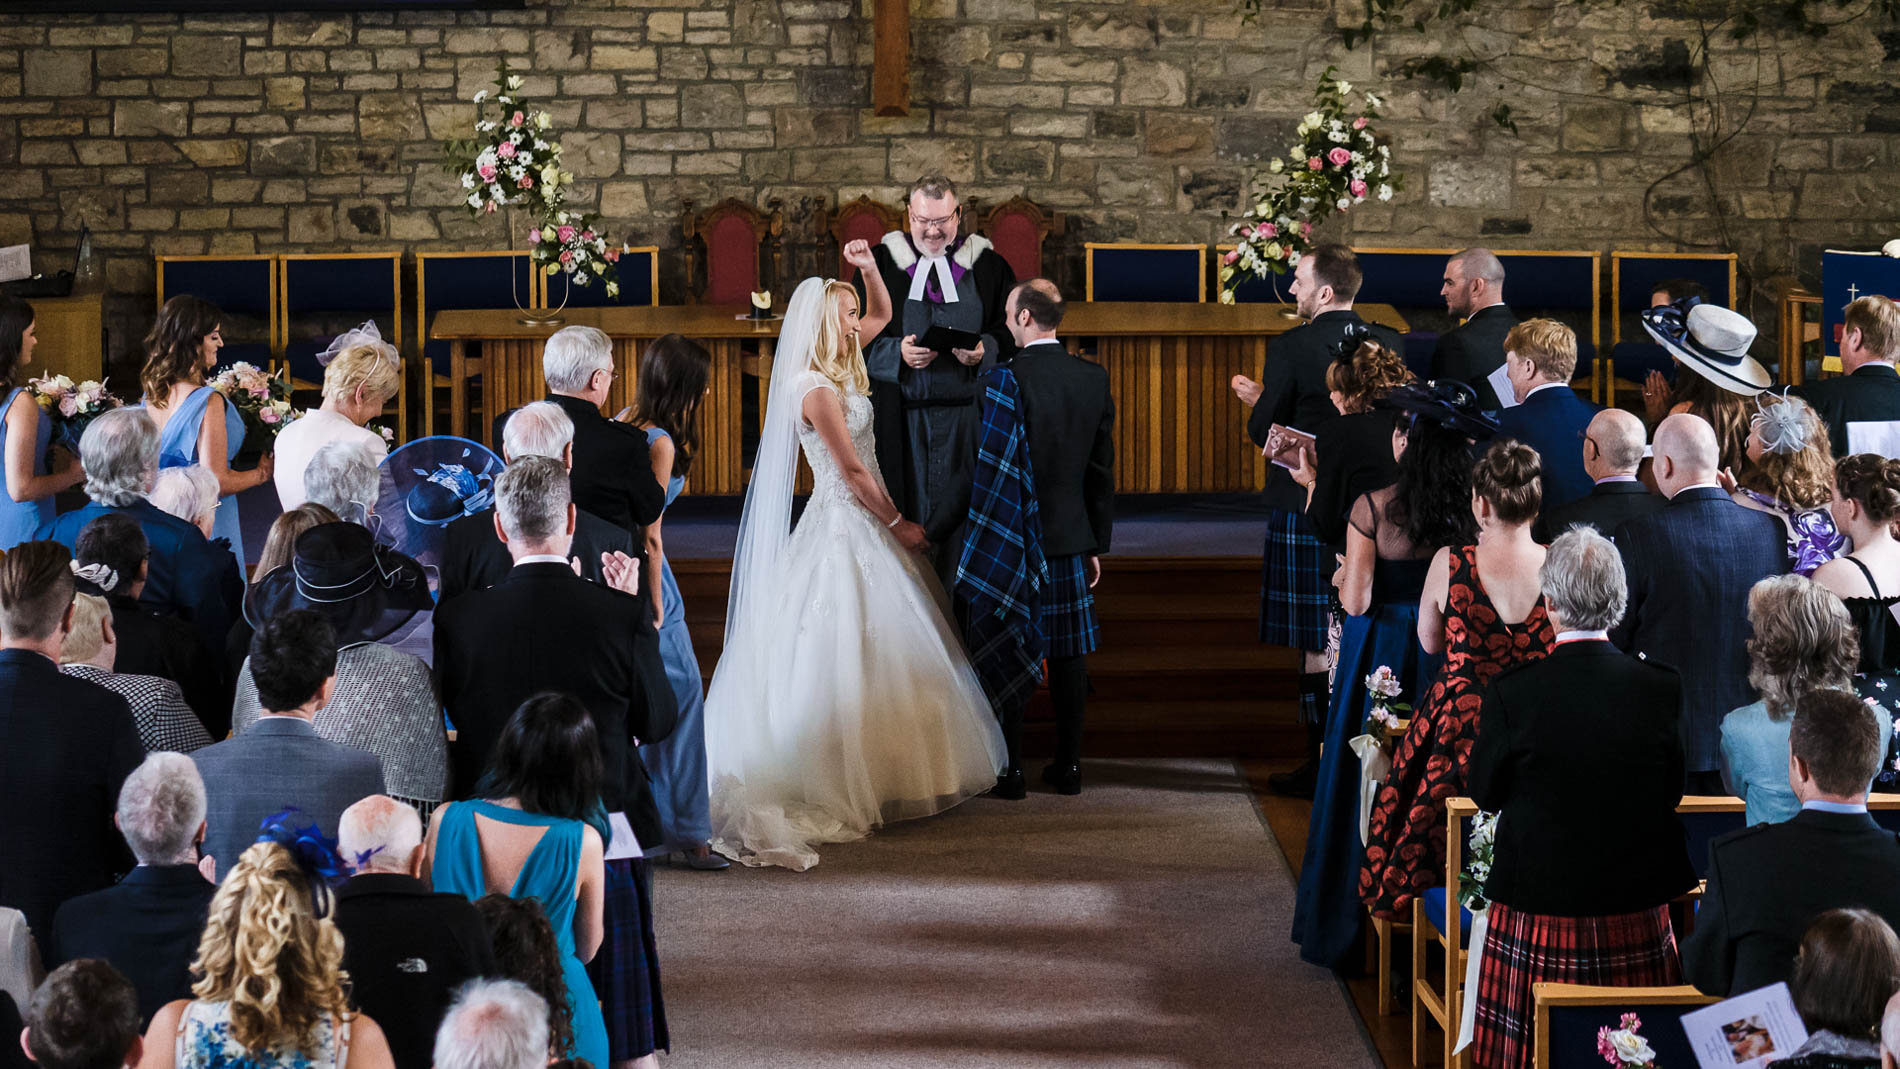 A colour photograph of the bride punching the air in joy at the altar of Saint Andrew's Church, Clermiston